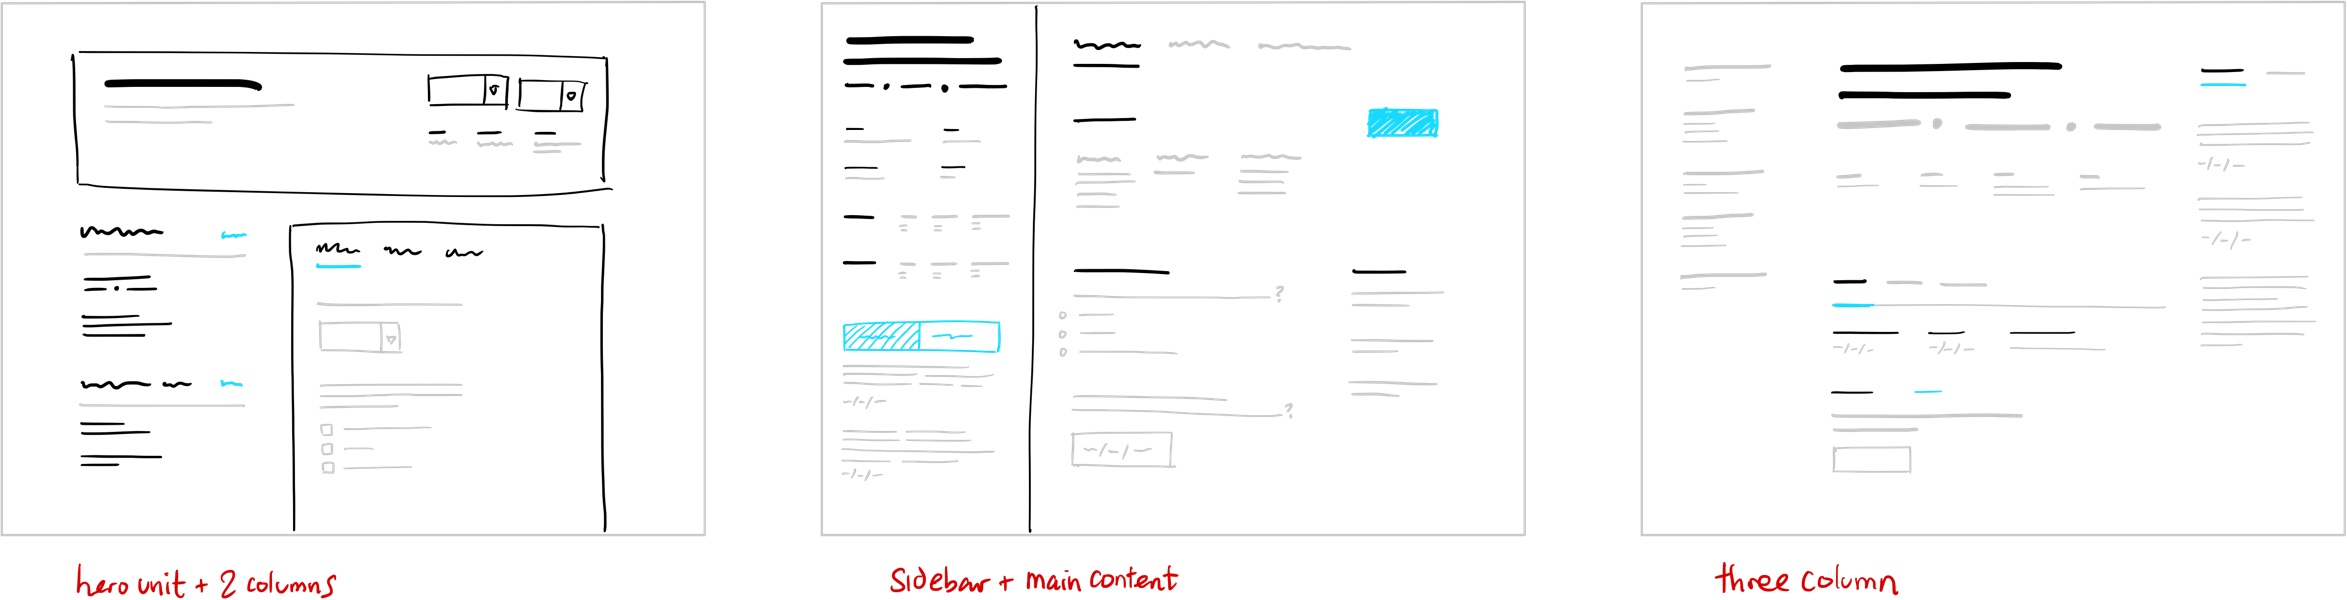 Case Page Sketches.png